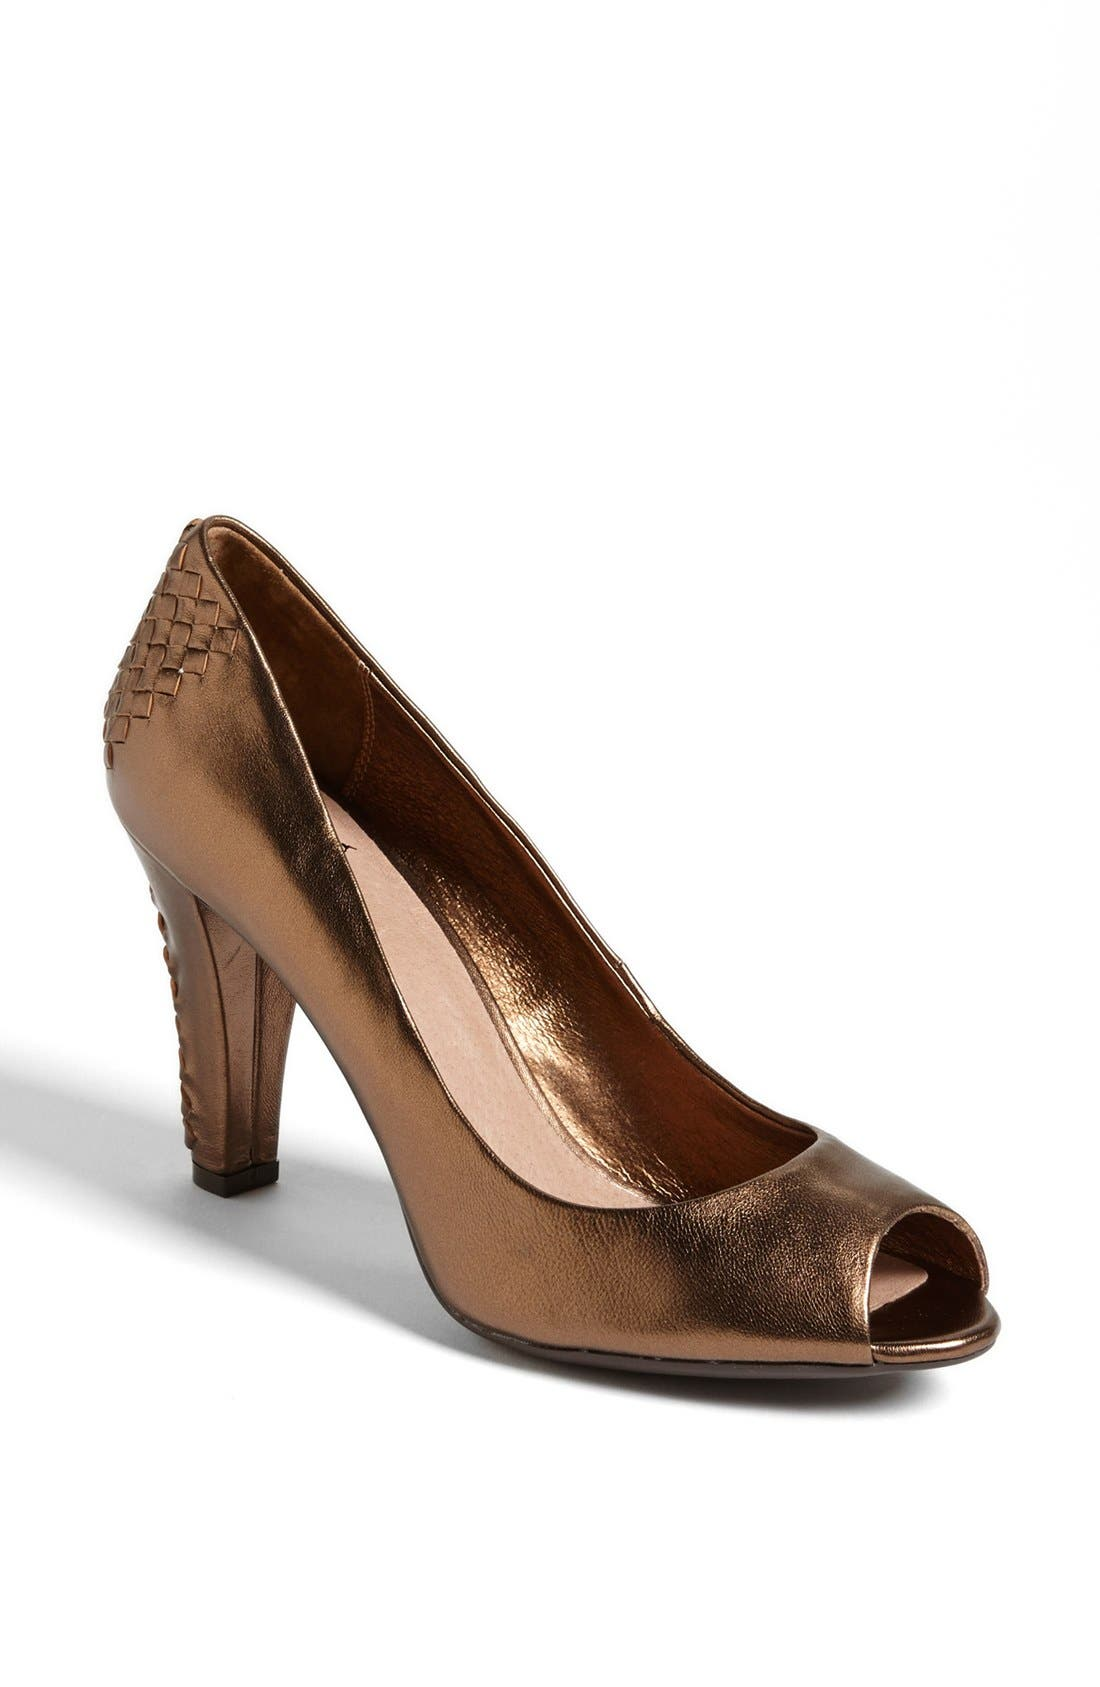 Alternate Image 1 Selected - Elliott Lucca 'Andrea' Pump (Online Only)